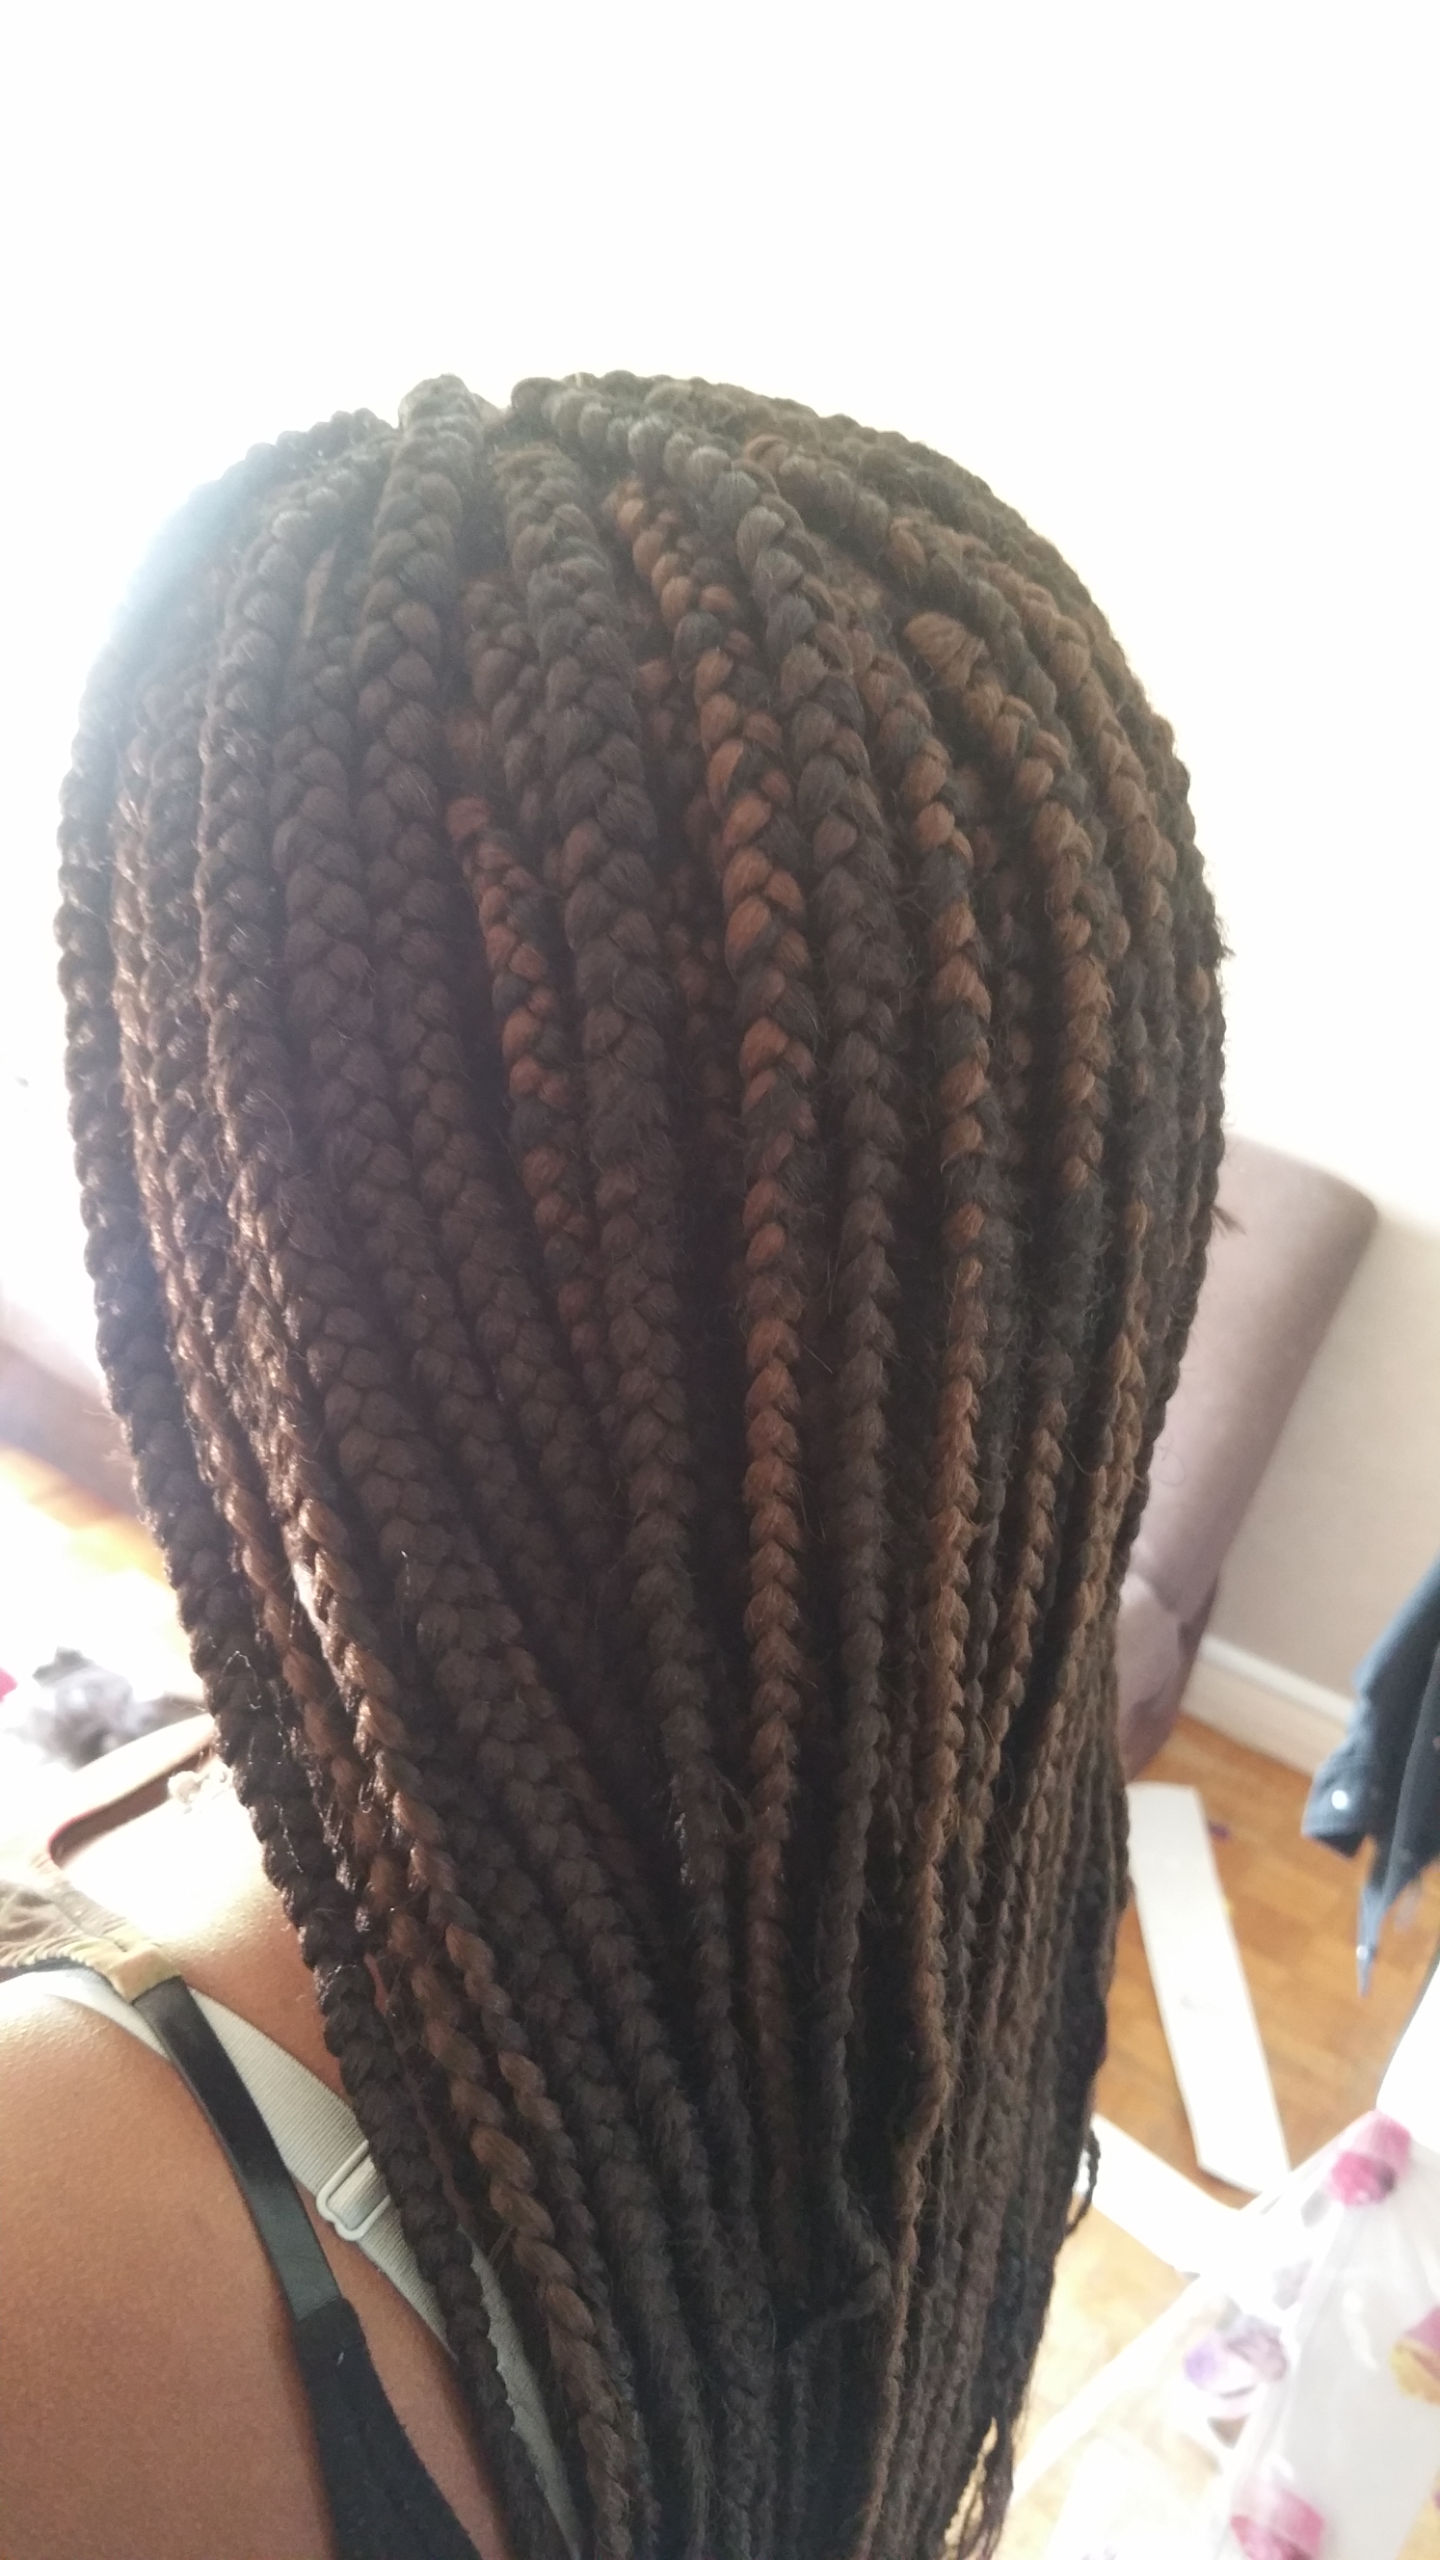 salon de coiffure afro tresse tresses box braids crochet braids vanilles tissages paris 75 77 78 91 92 93 94 95 DZREIZUB